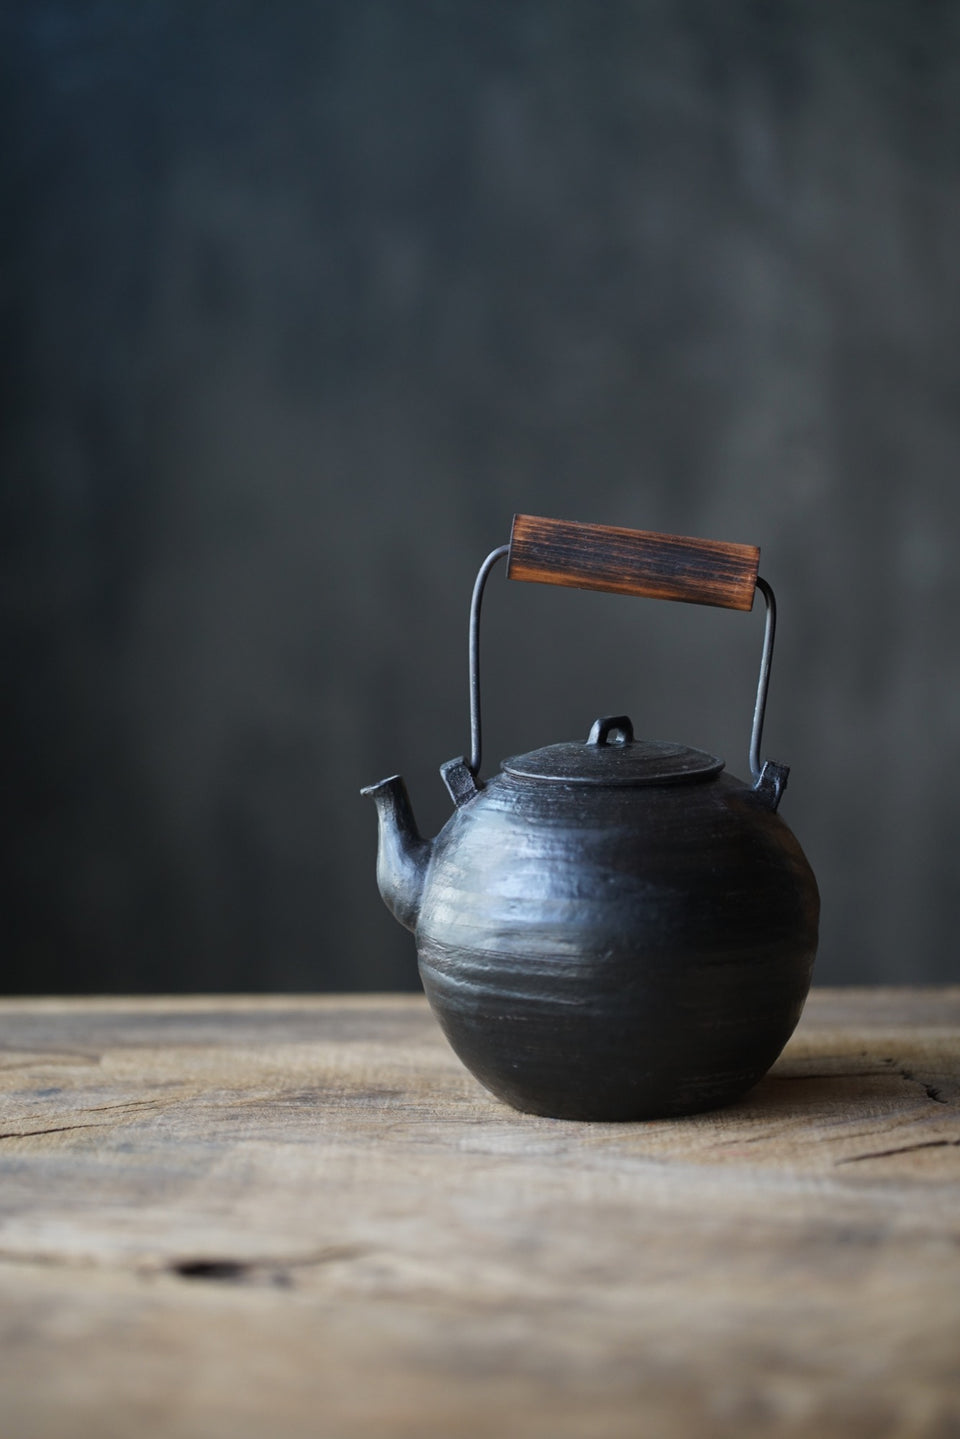 Wood-Handled Ceramic Kettle With Black Glaze